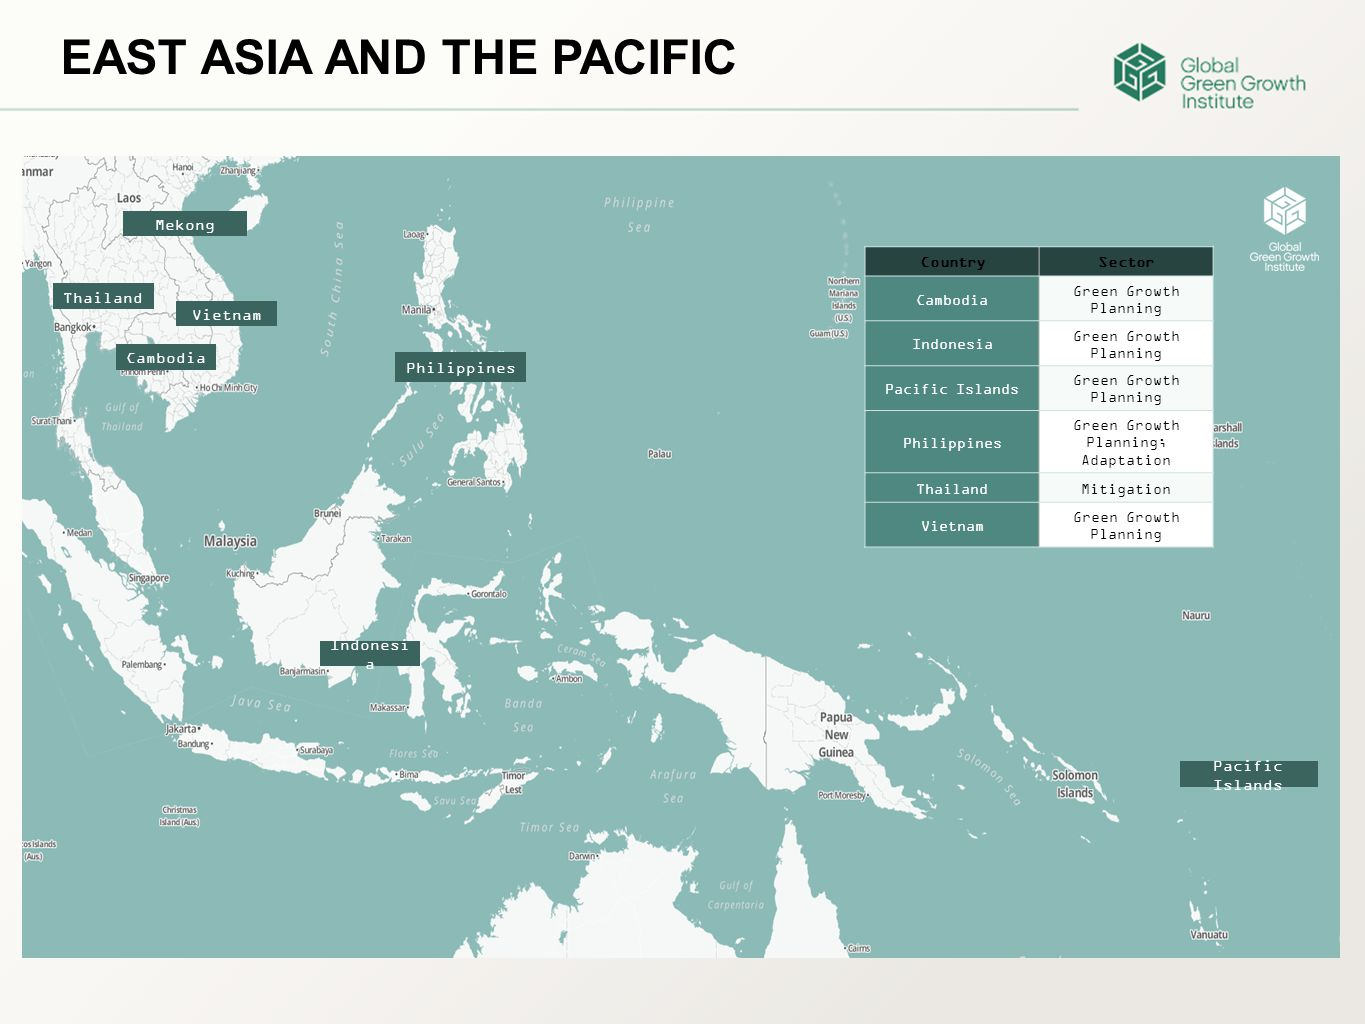 EAST ASIA AND THE PACIFIC Thailand CountrySector Cambodia Green Growth Planning Indonesia Green Growth Planning Pacific Islands Green Growth Planning Philippines Green Growth Planning; Adaptation ThailandMitigation Vietnam Green Growth Planning Cambodia Vietnam Mekong Philippines Indonesi a Pacific Islands